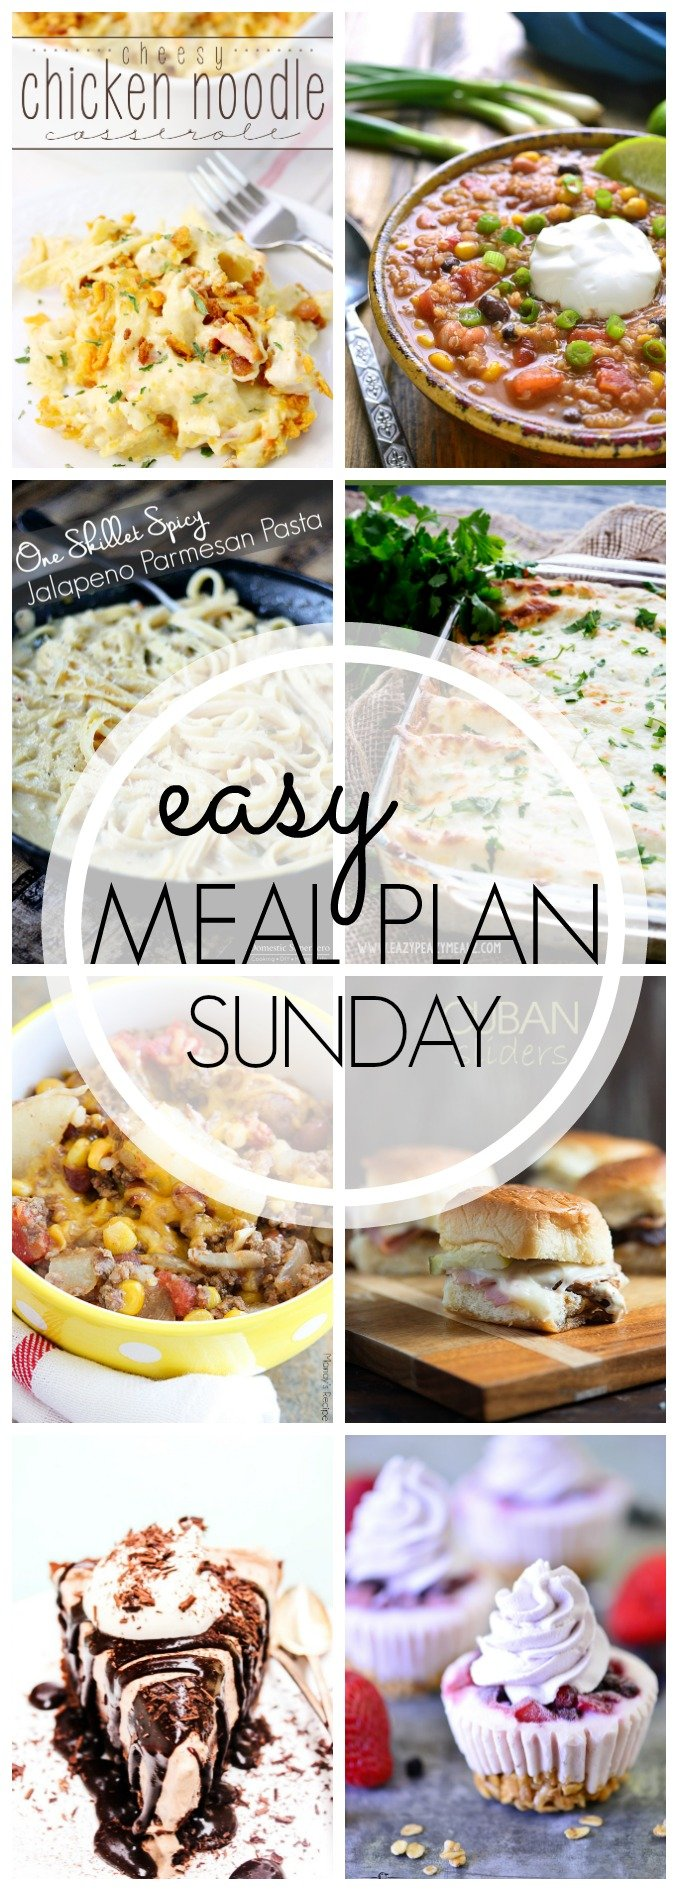 EASY MEAL PLAN - great dinner and dessert recipes for the entire week!